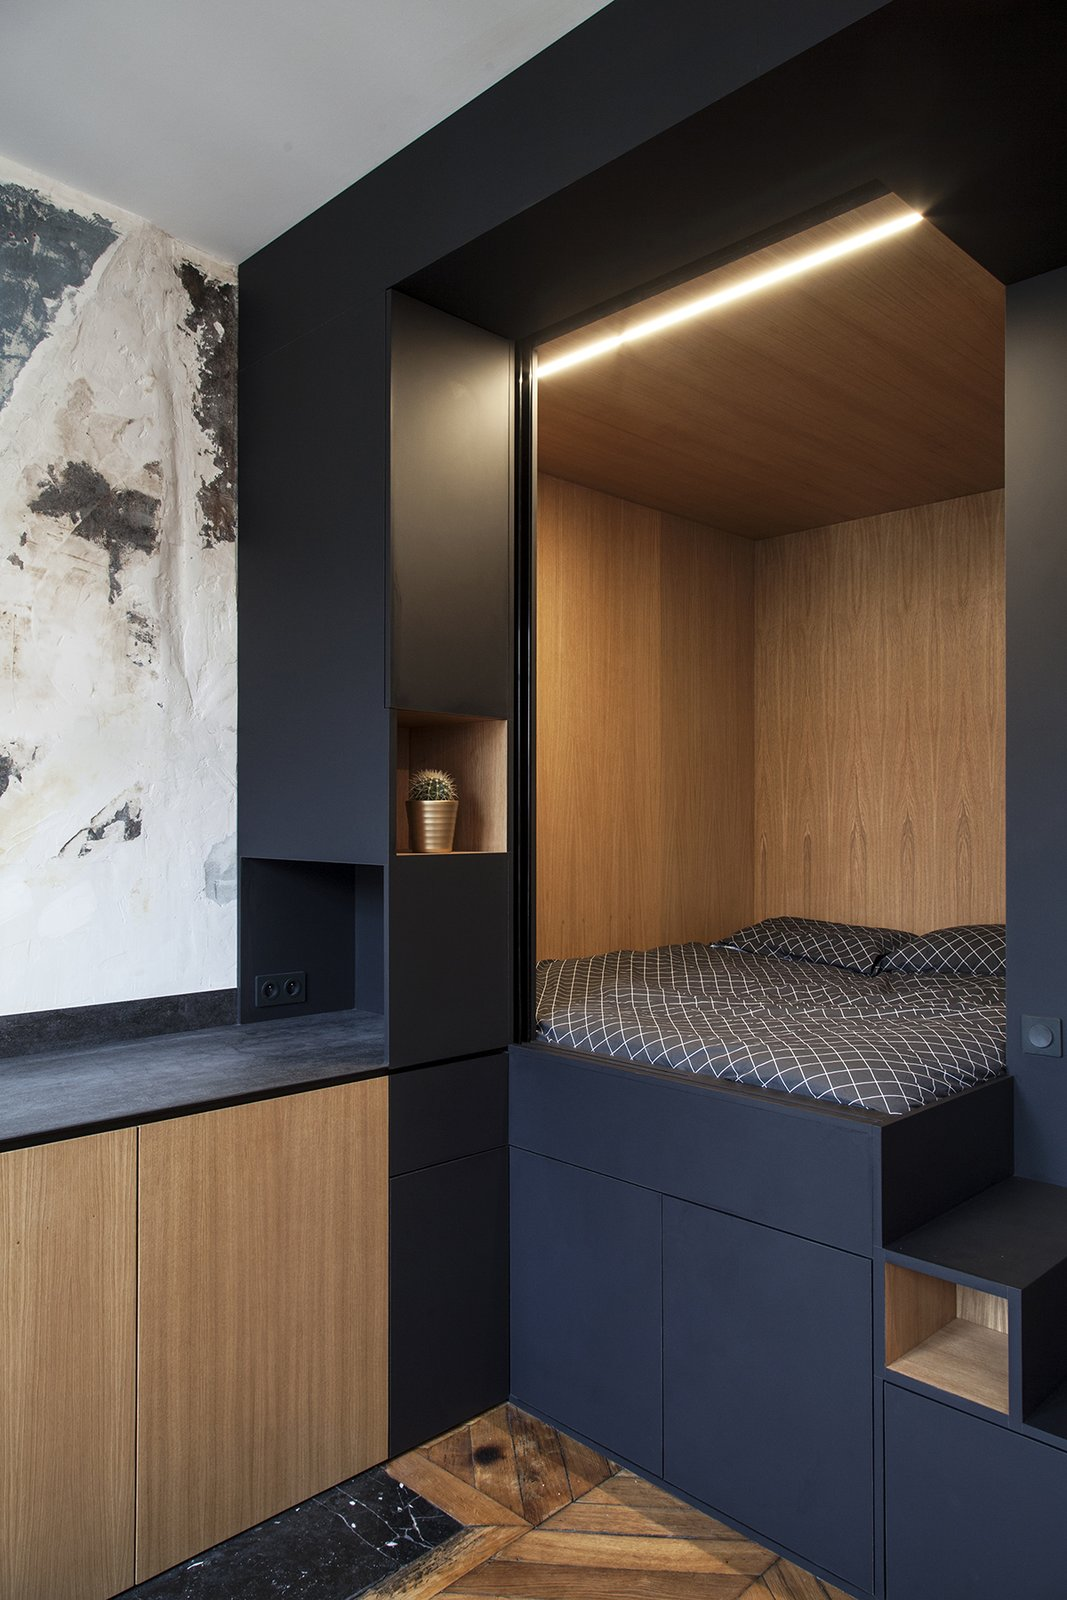 Bedroom, Bed, Shelves, Accent Lighting, Medium Hardwood Floor, and Storage The cube is connected to a discrete kitchenette with built-in cabinetry.  Photo 5 of 9 in A Multipurpose Bedroom Box Is This Tiny Apartment's Genius Solution